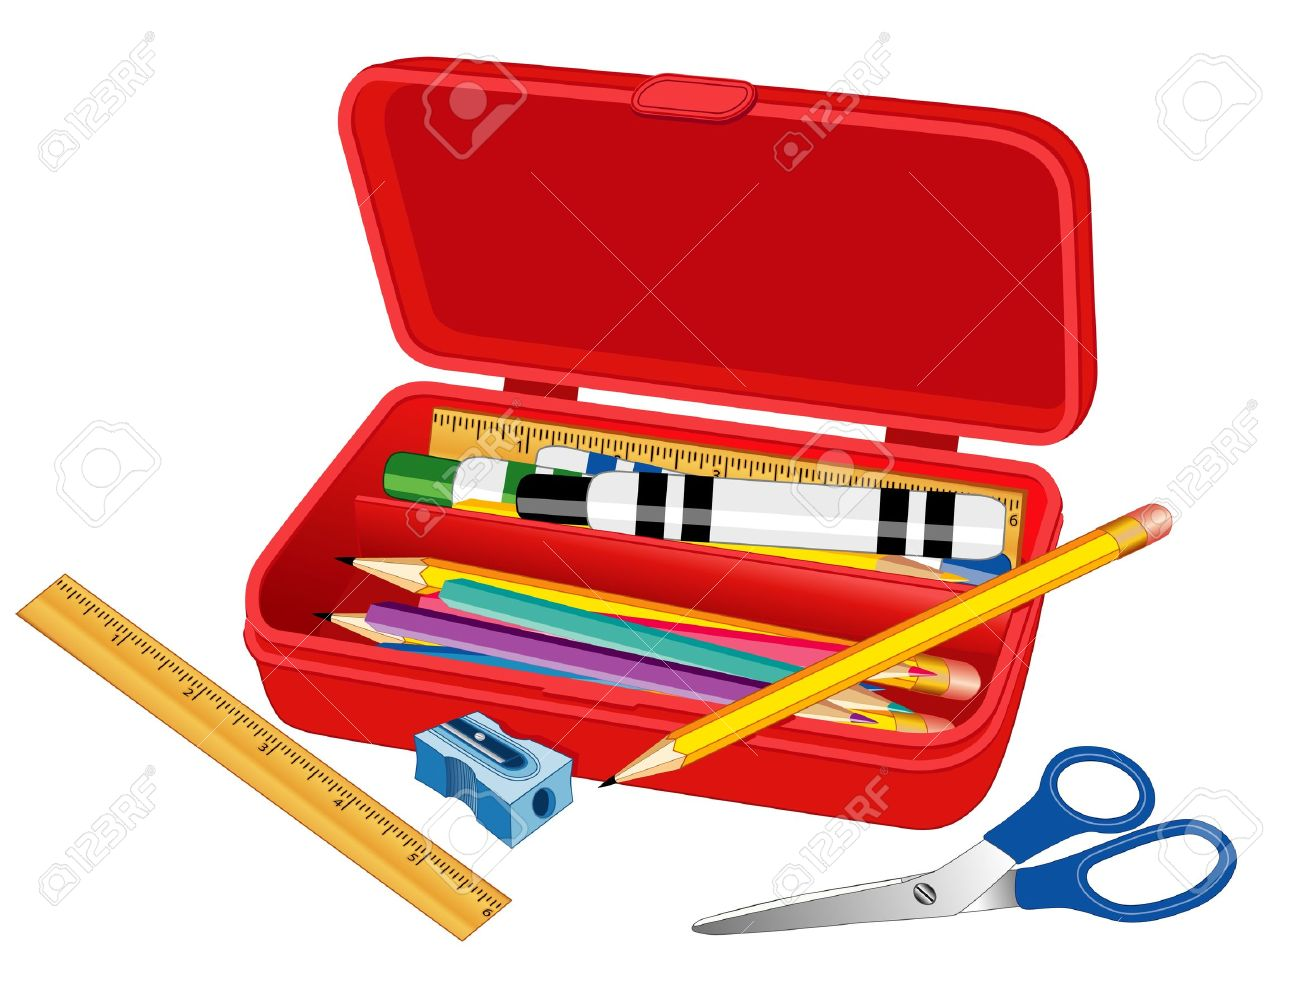 Pencil Box with ruler, marker pens, scissors, pencils and sharpener for home, business, school, literacy projects, scrapbooks. Stock Vector - 11170836